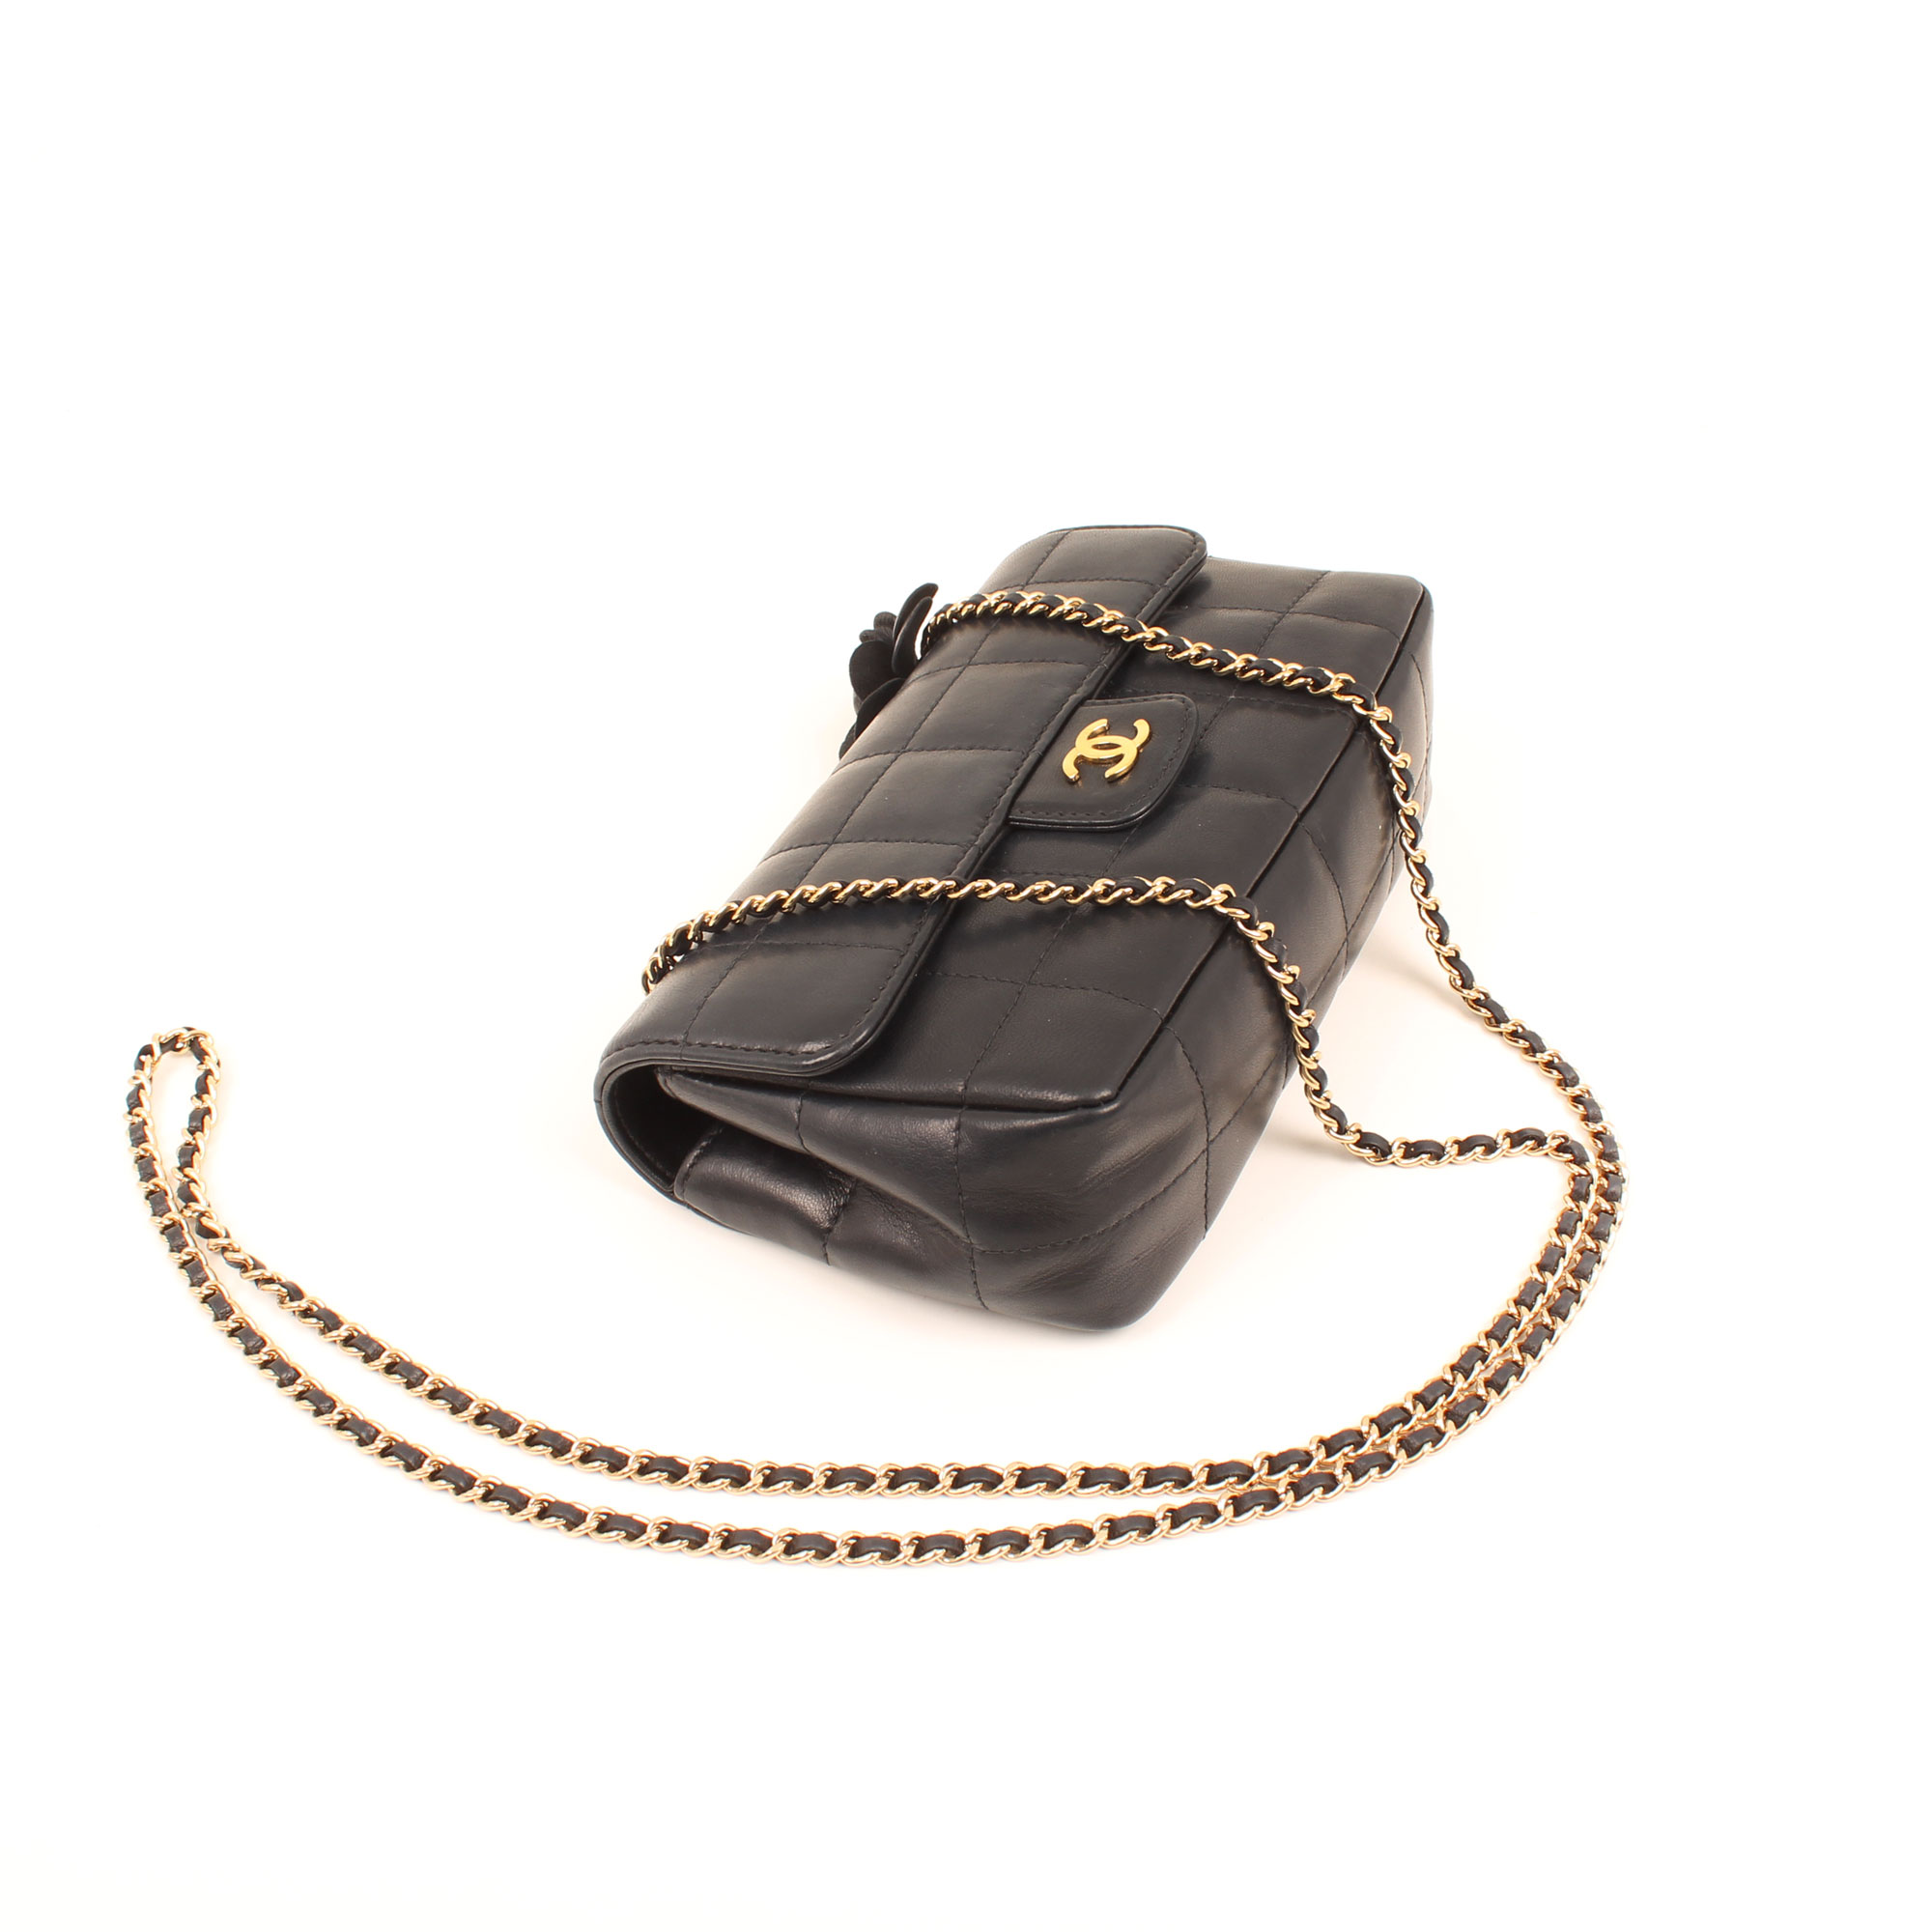 Imagen general 2 del bolso chanel mini crossbody chocolate bar navy blue camelia